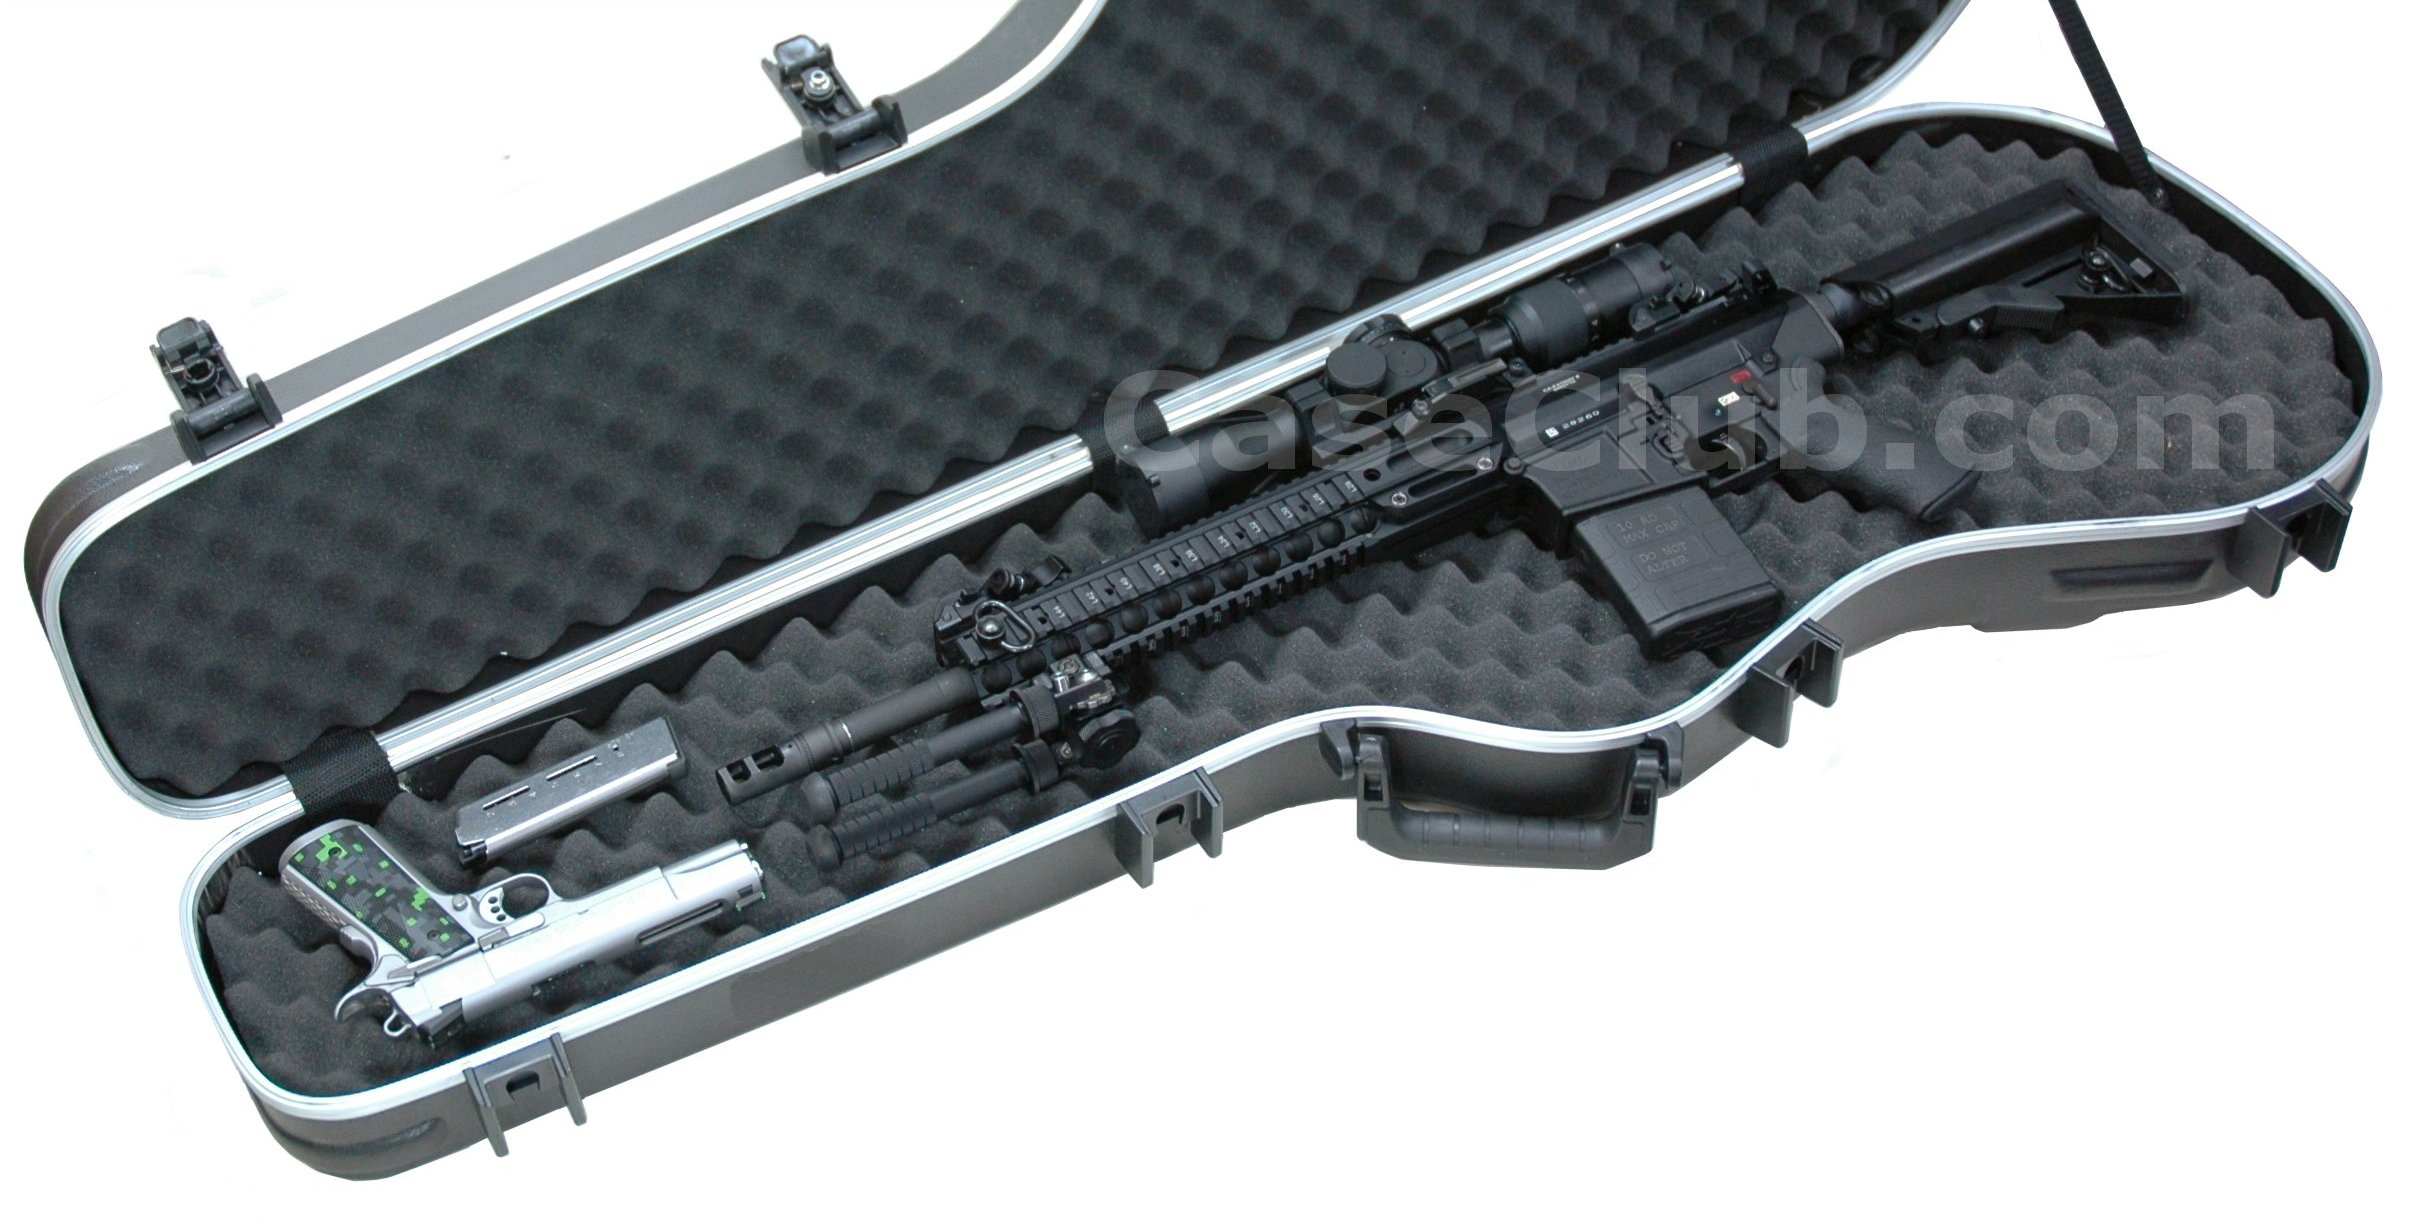 Case Club Discreet Universal Rifle Case Made From A Guitar